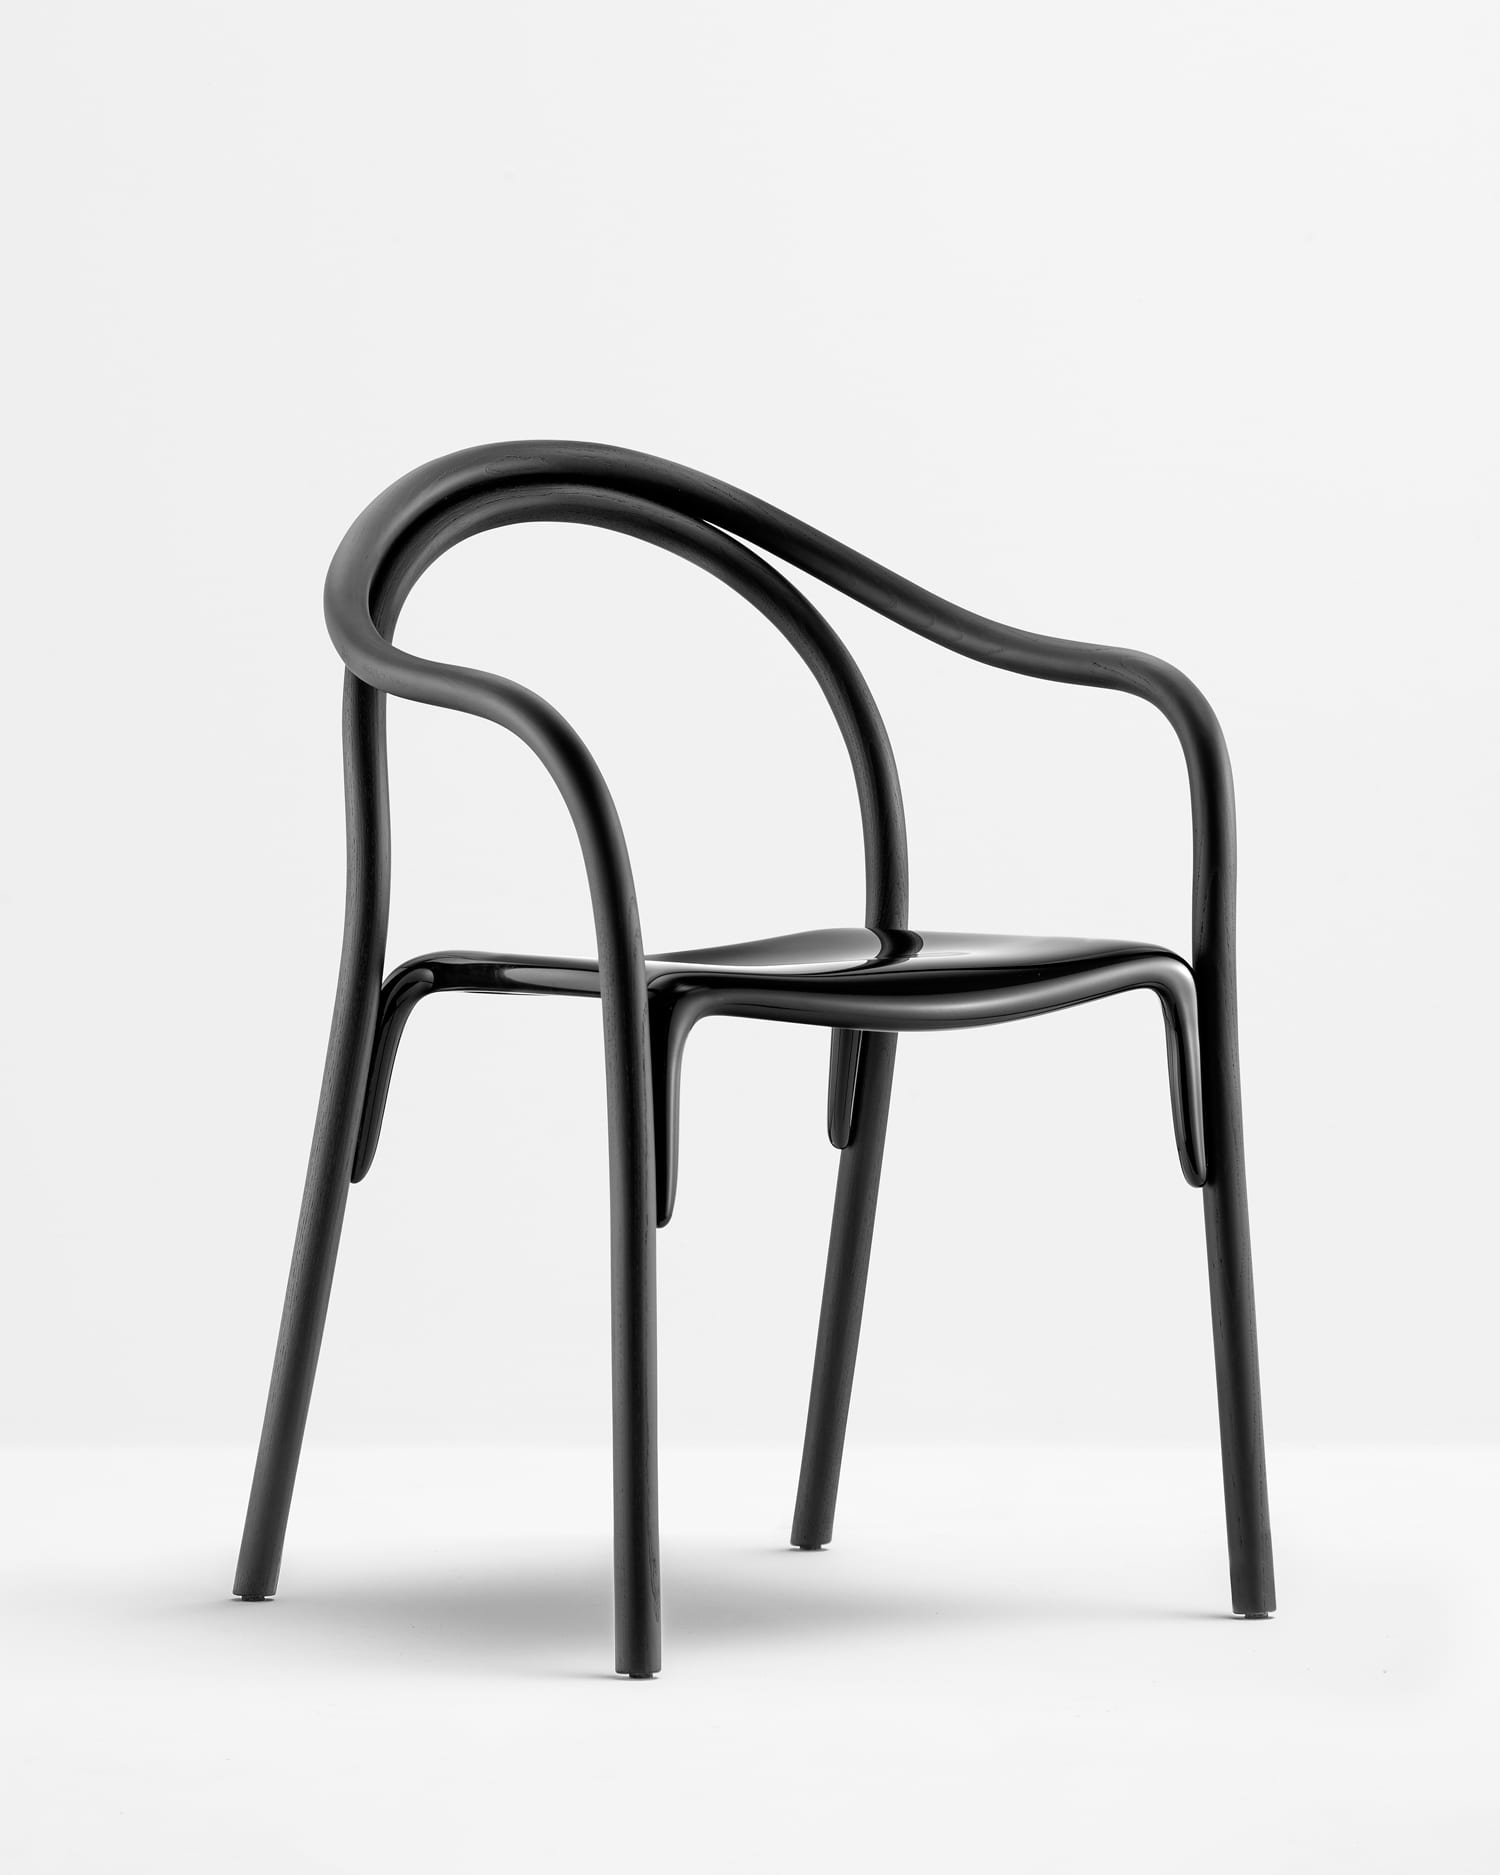 Soul Chair by Pedral at Maison & Objet 2019 | Yellowtrace